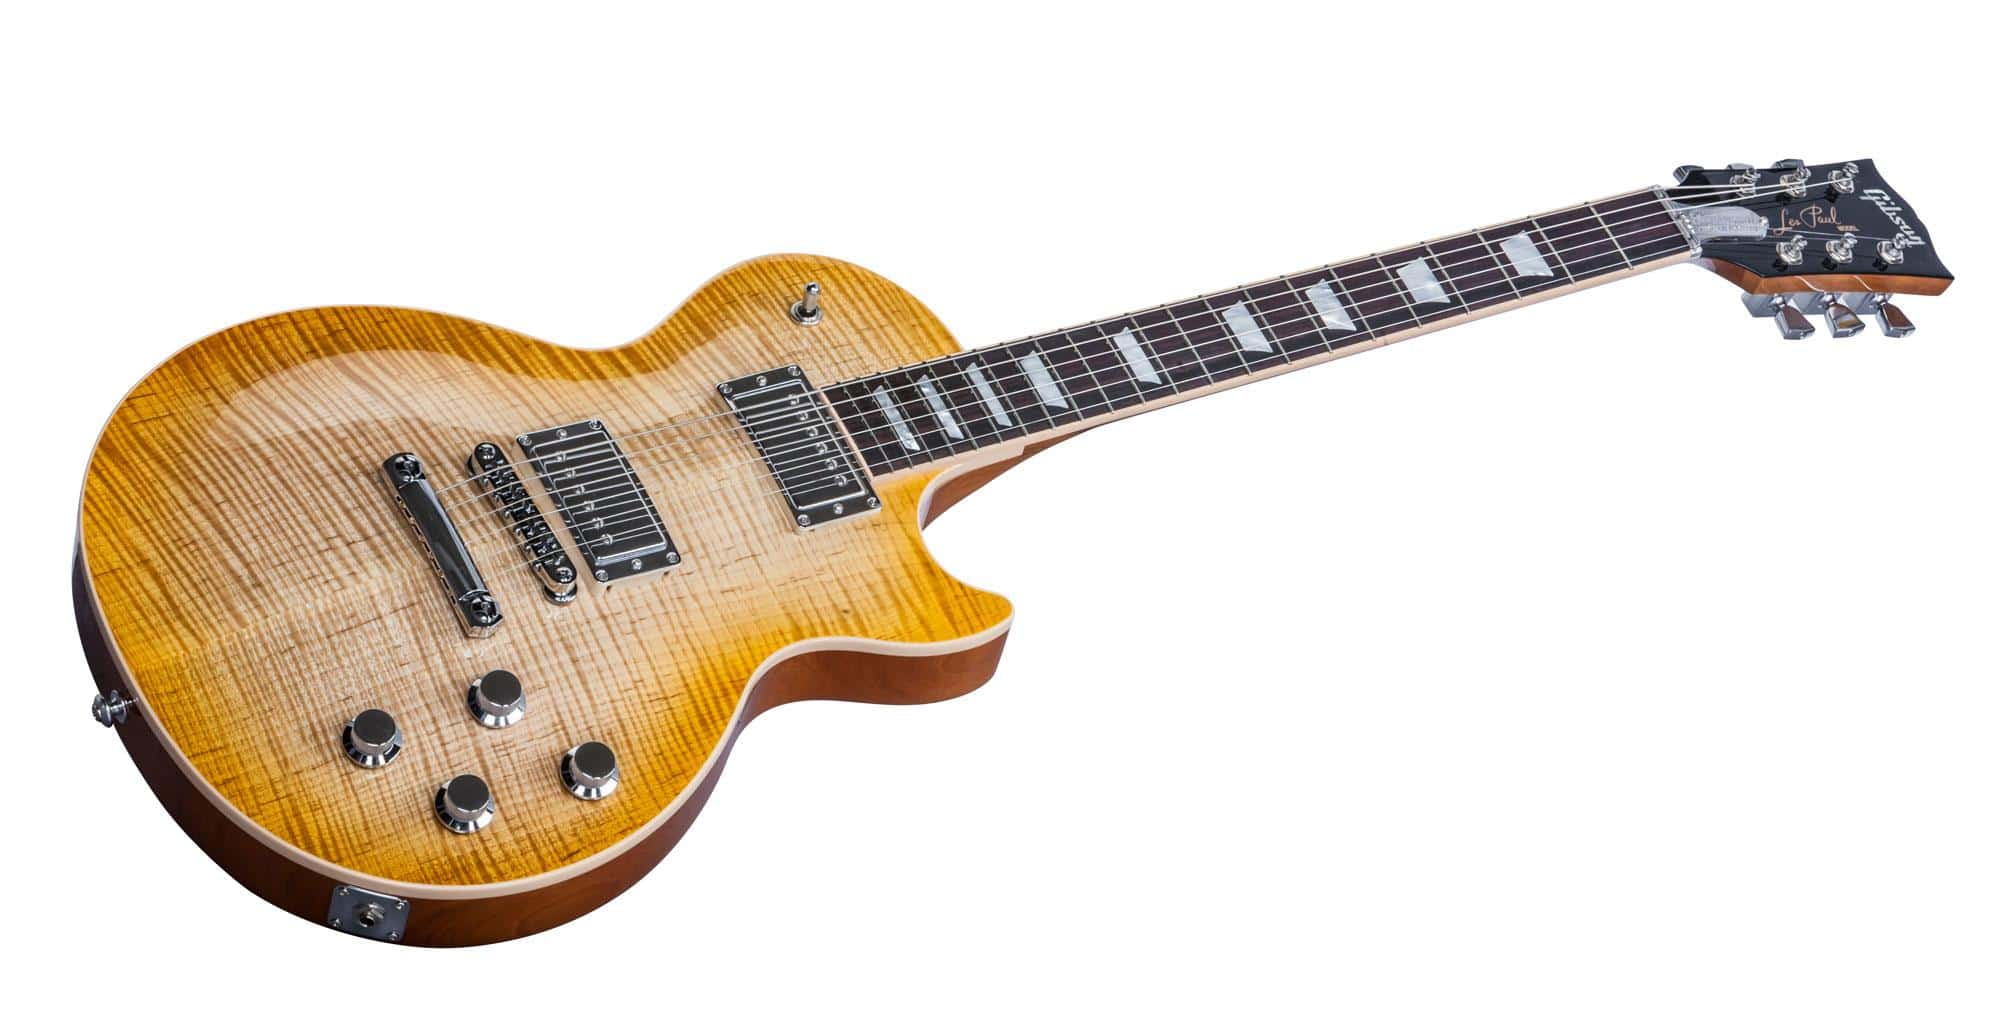 Traumhafte Gibson Les Paul Traditional in Antique Burst inkl. Koffer, Strap, uvm